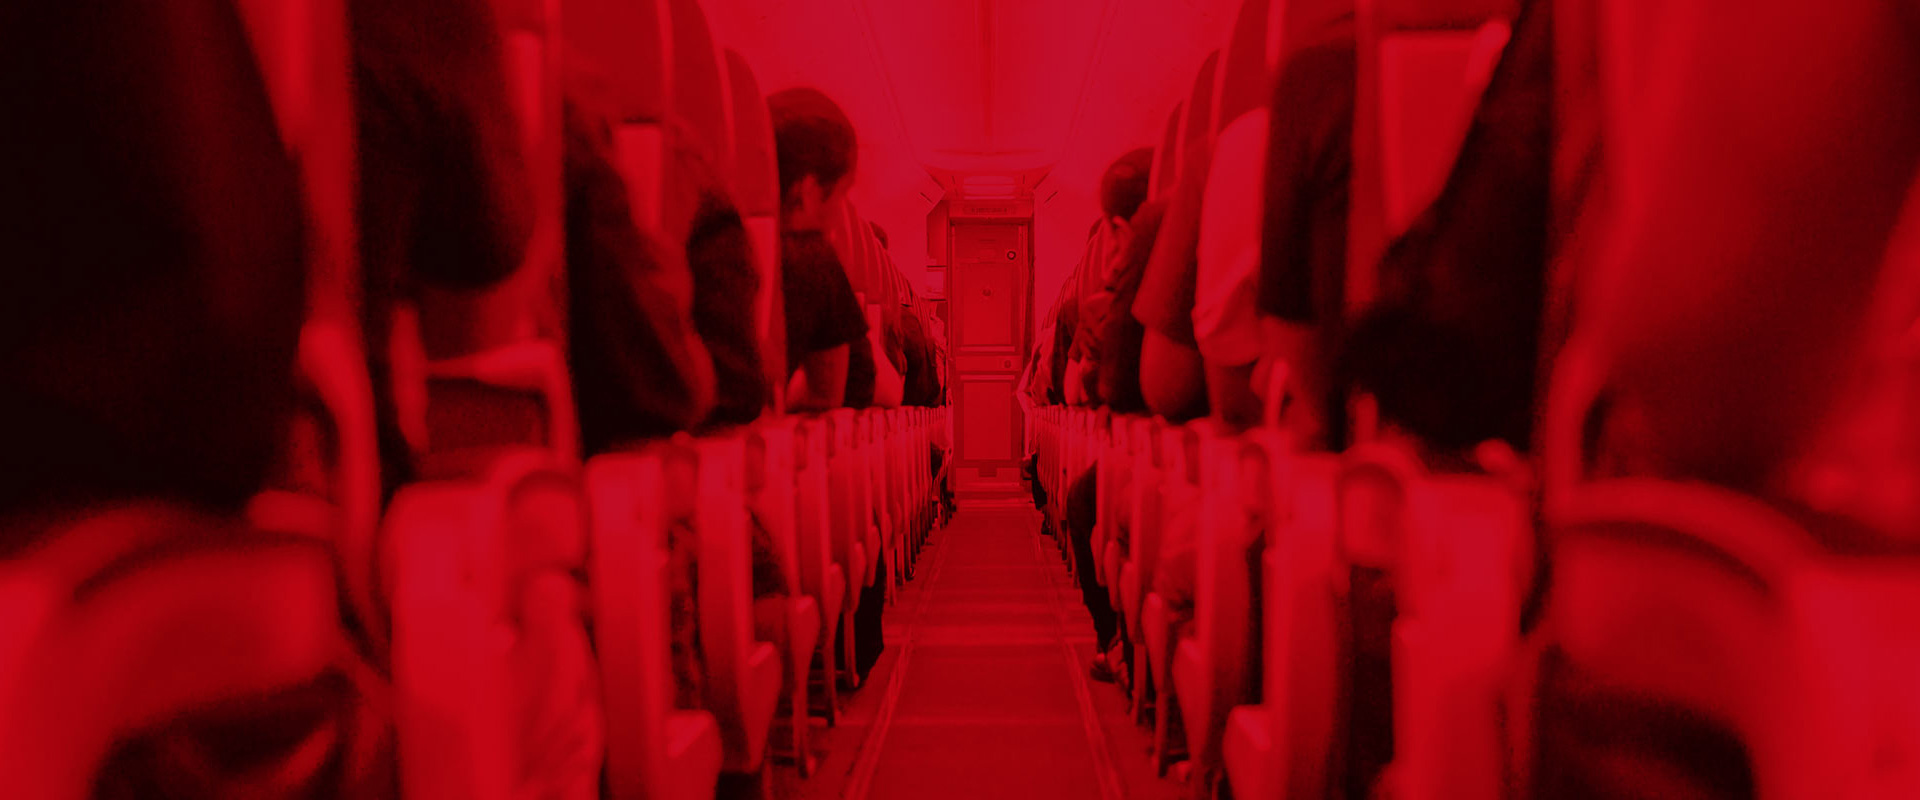 Image of people on an airplane, representing aviation.